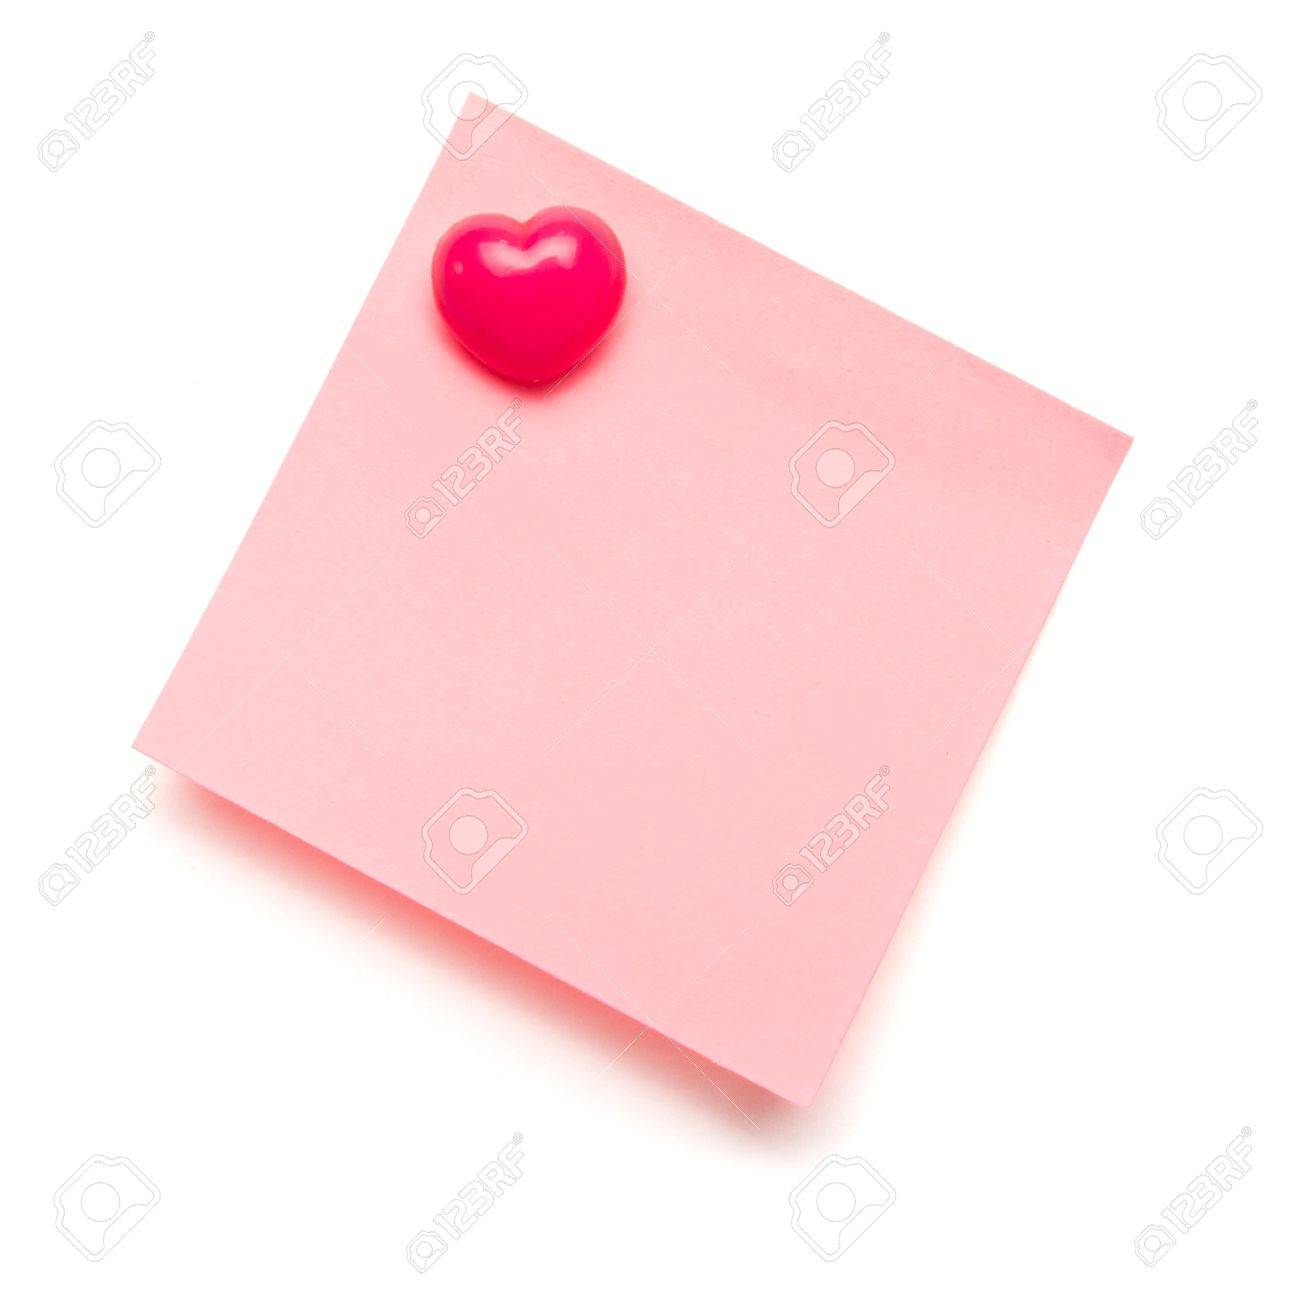 Light pink self adhesive post it note with heart shape push pin on white. Stock Photo - 8329424